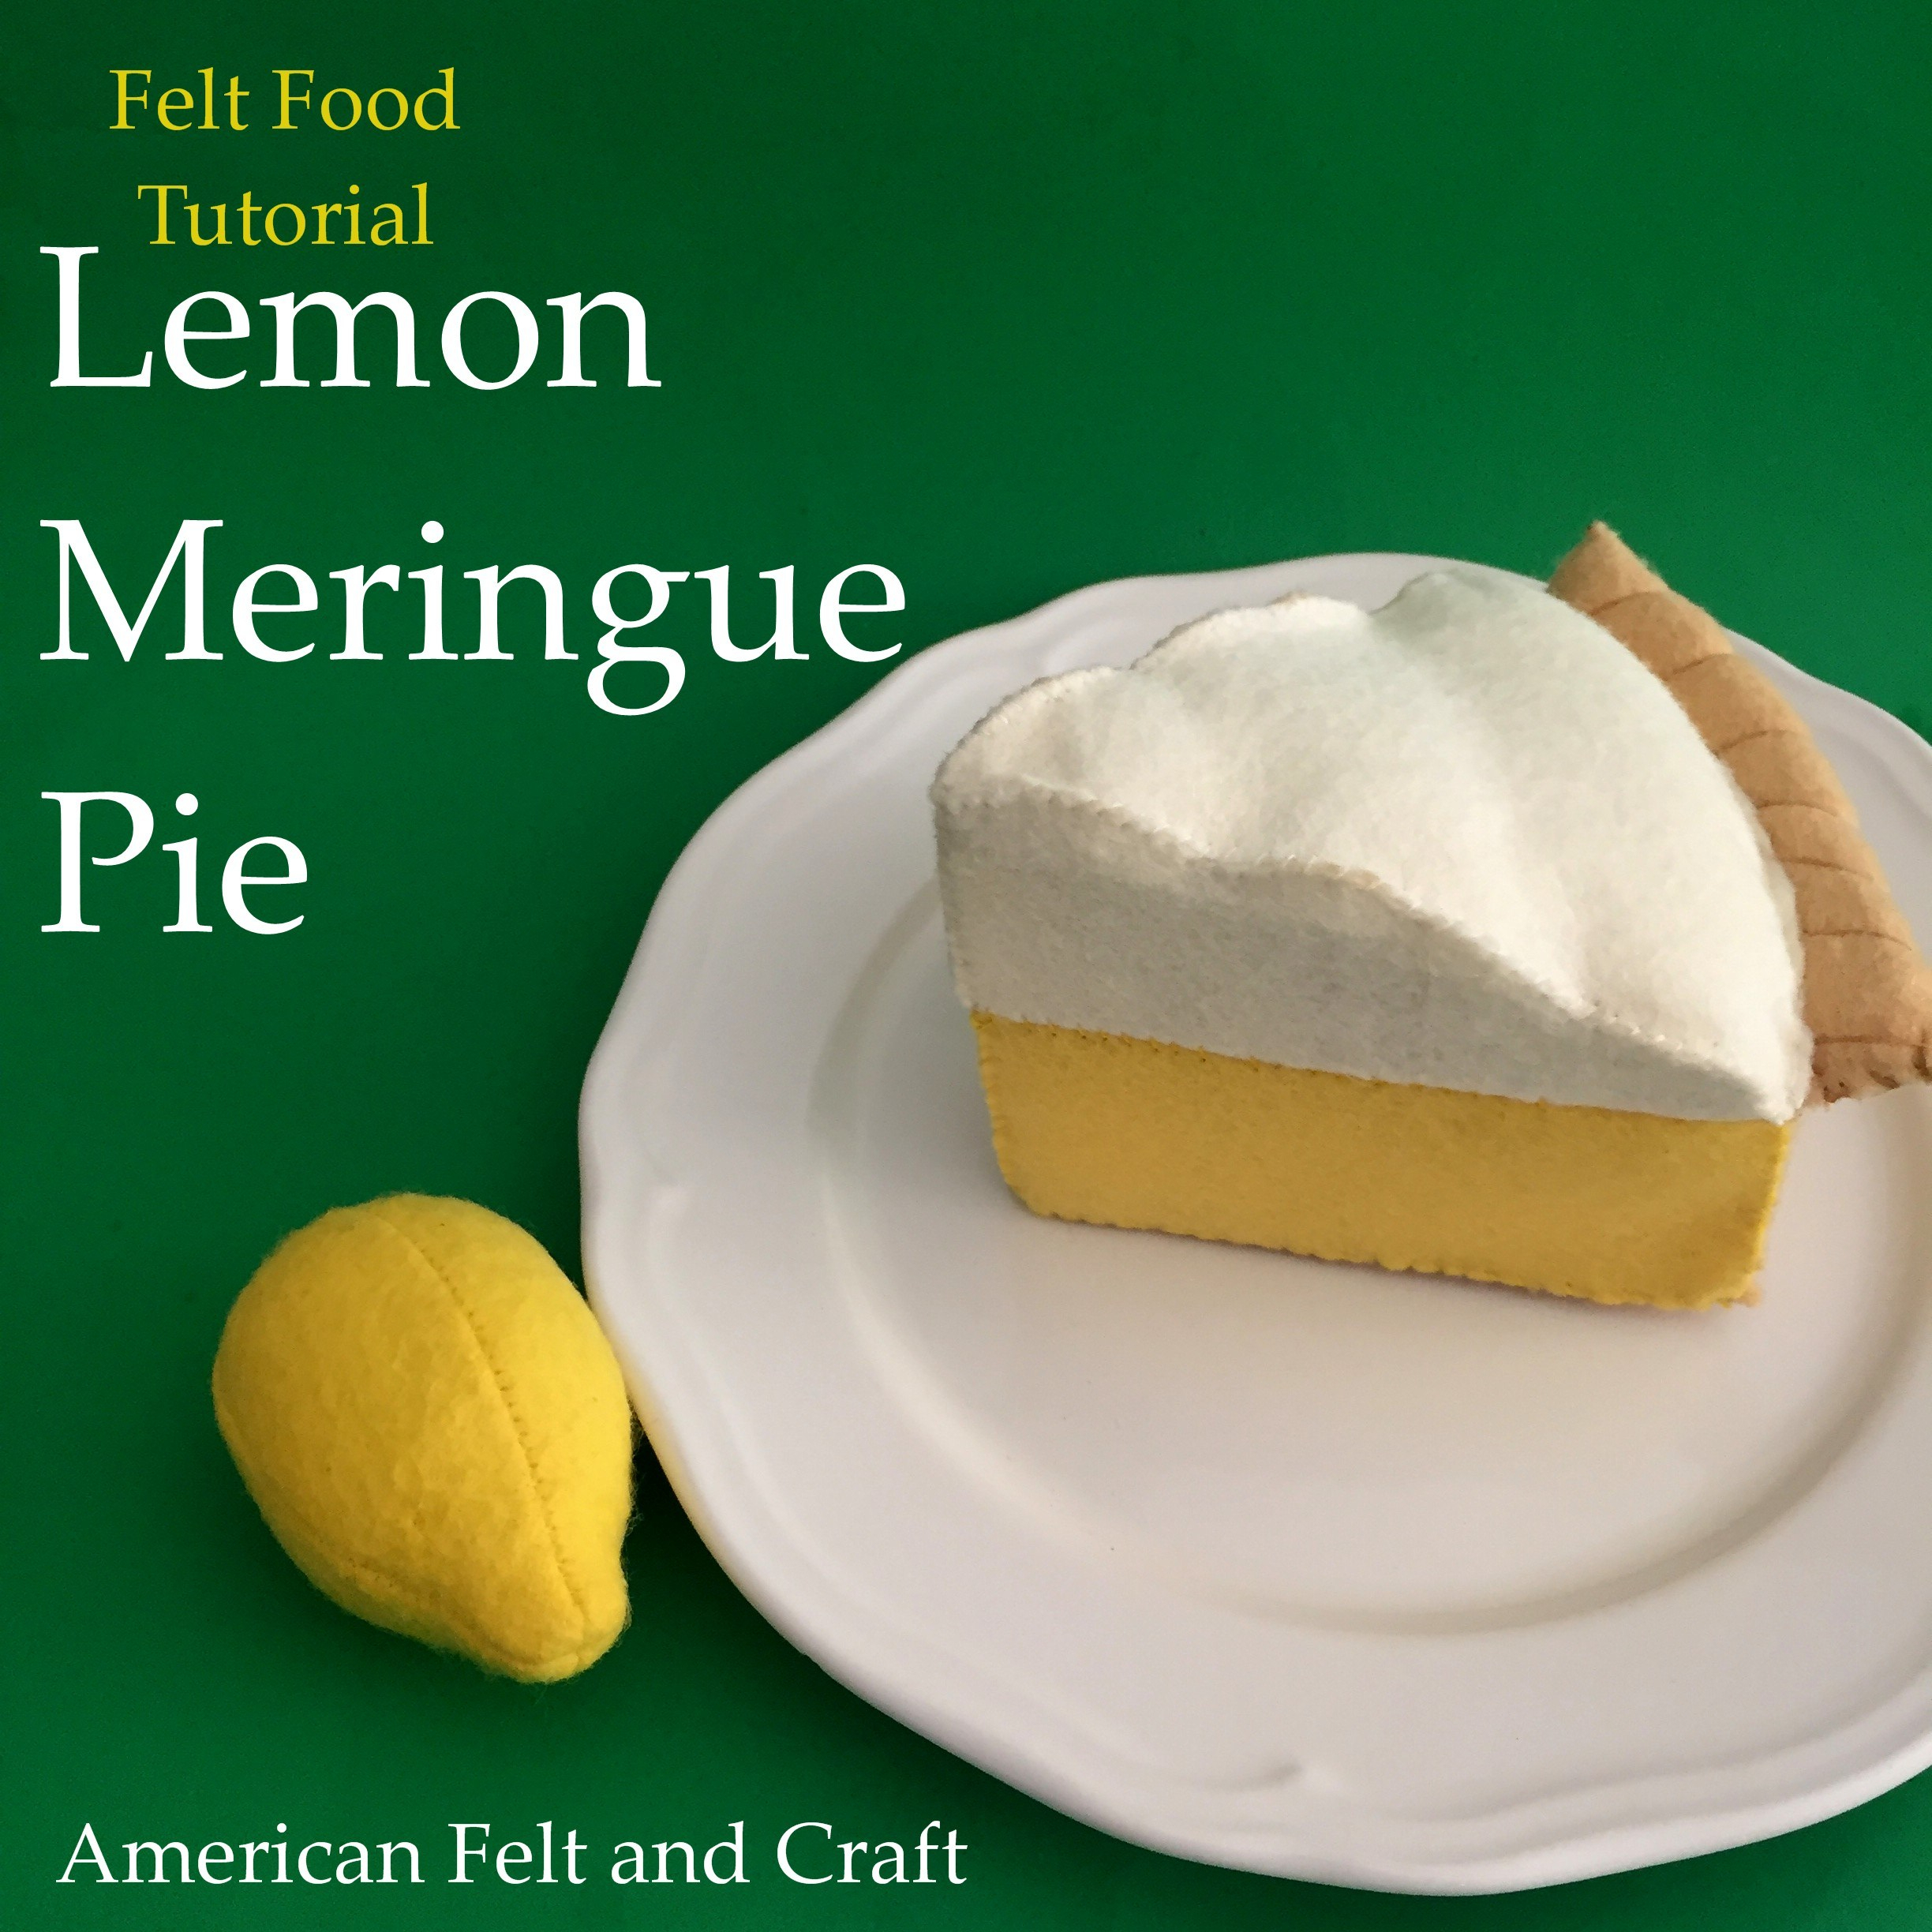 Tutorial and pattern: Felt food lemon meringue pie